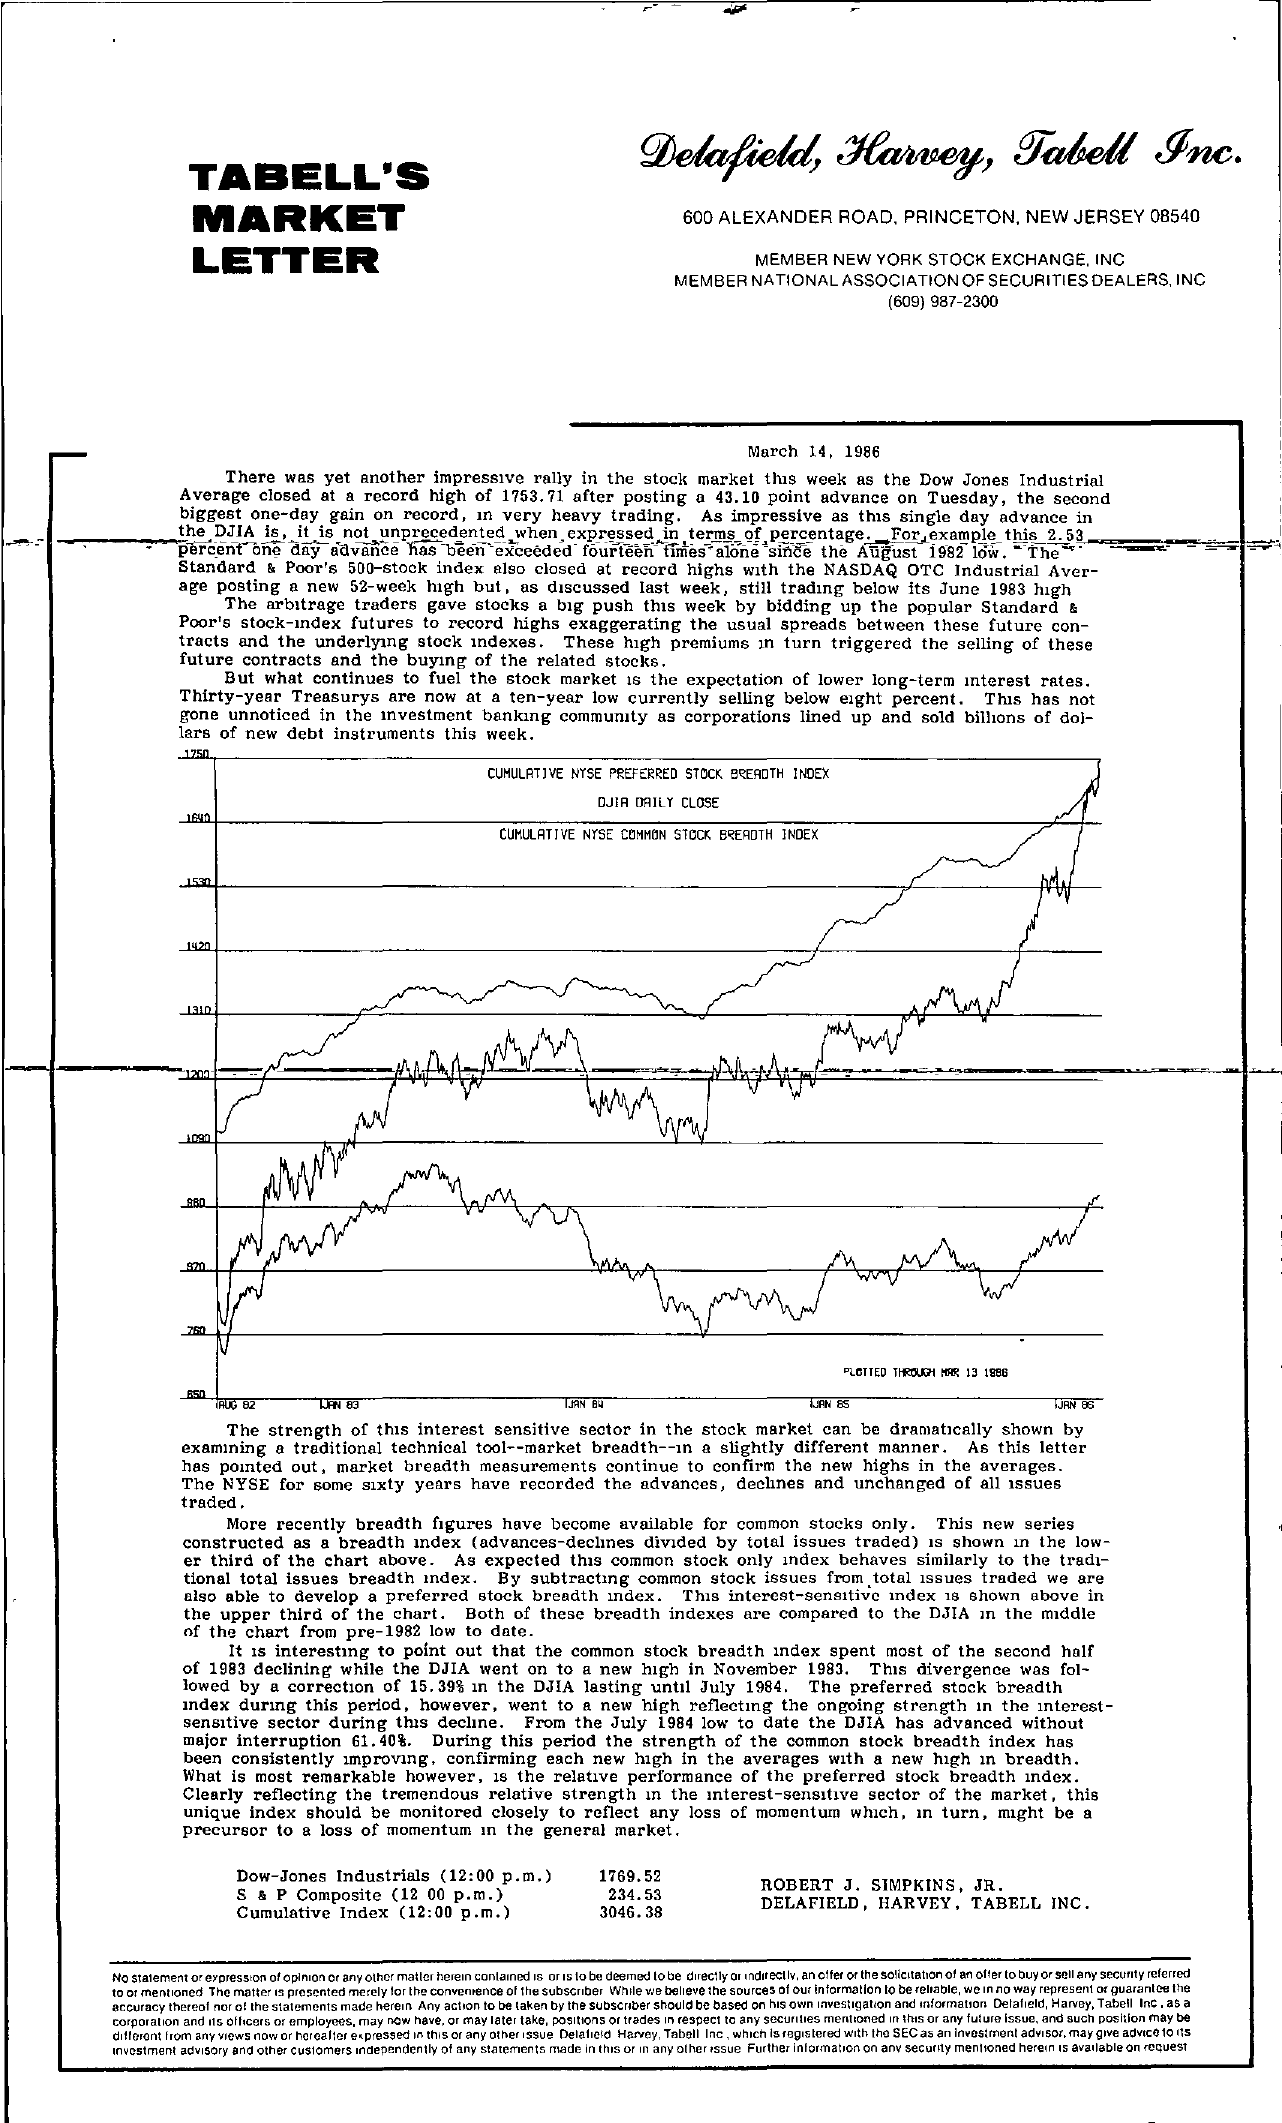 Tabell's Market Letter - March 14, 1986